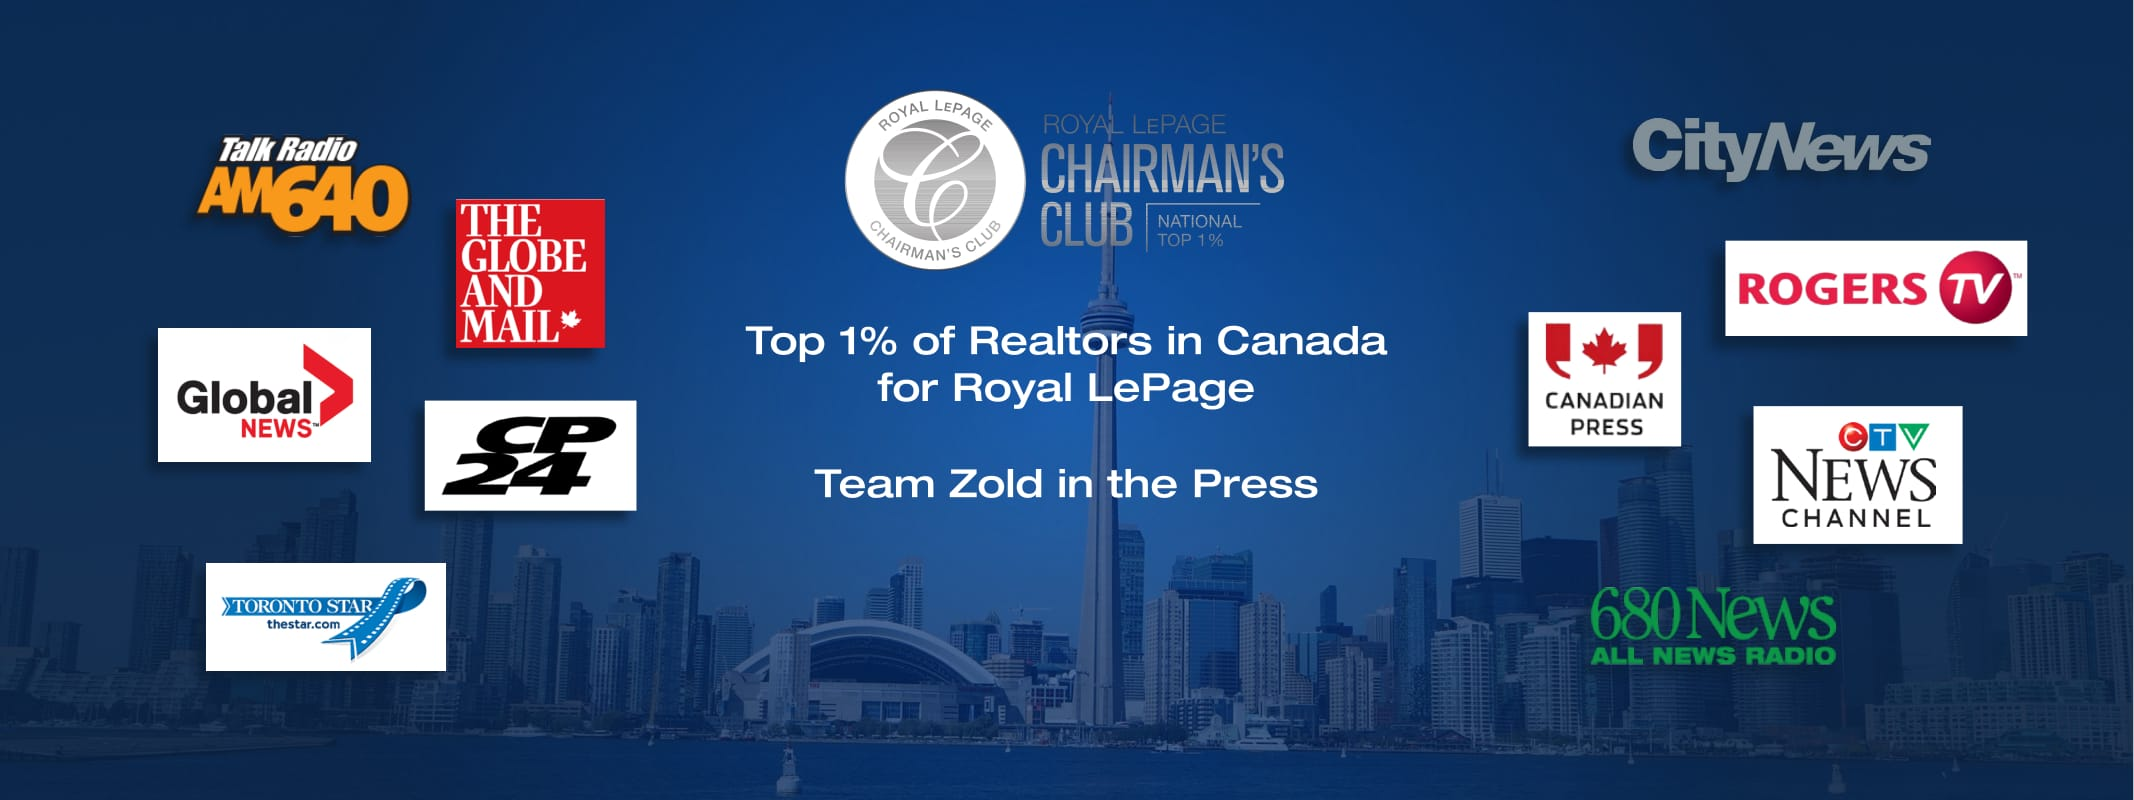 Top 1% of Realtors in Canada for Royal LePage, Team Zold